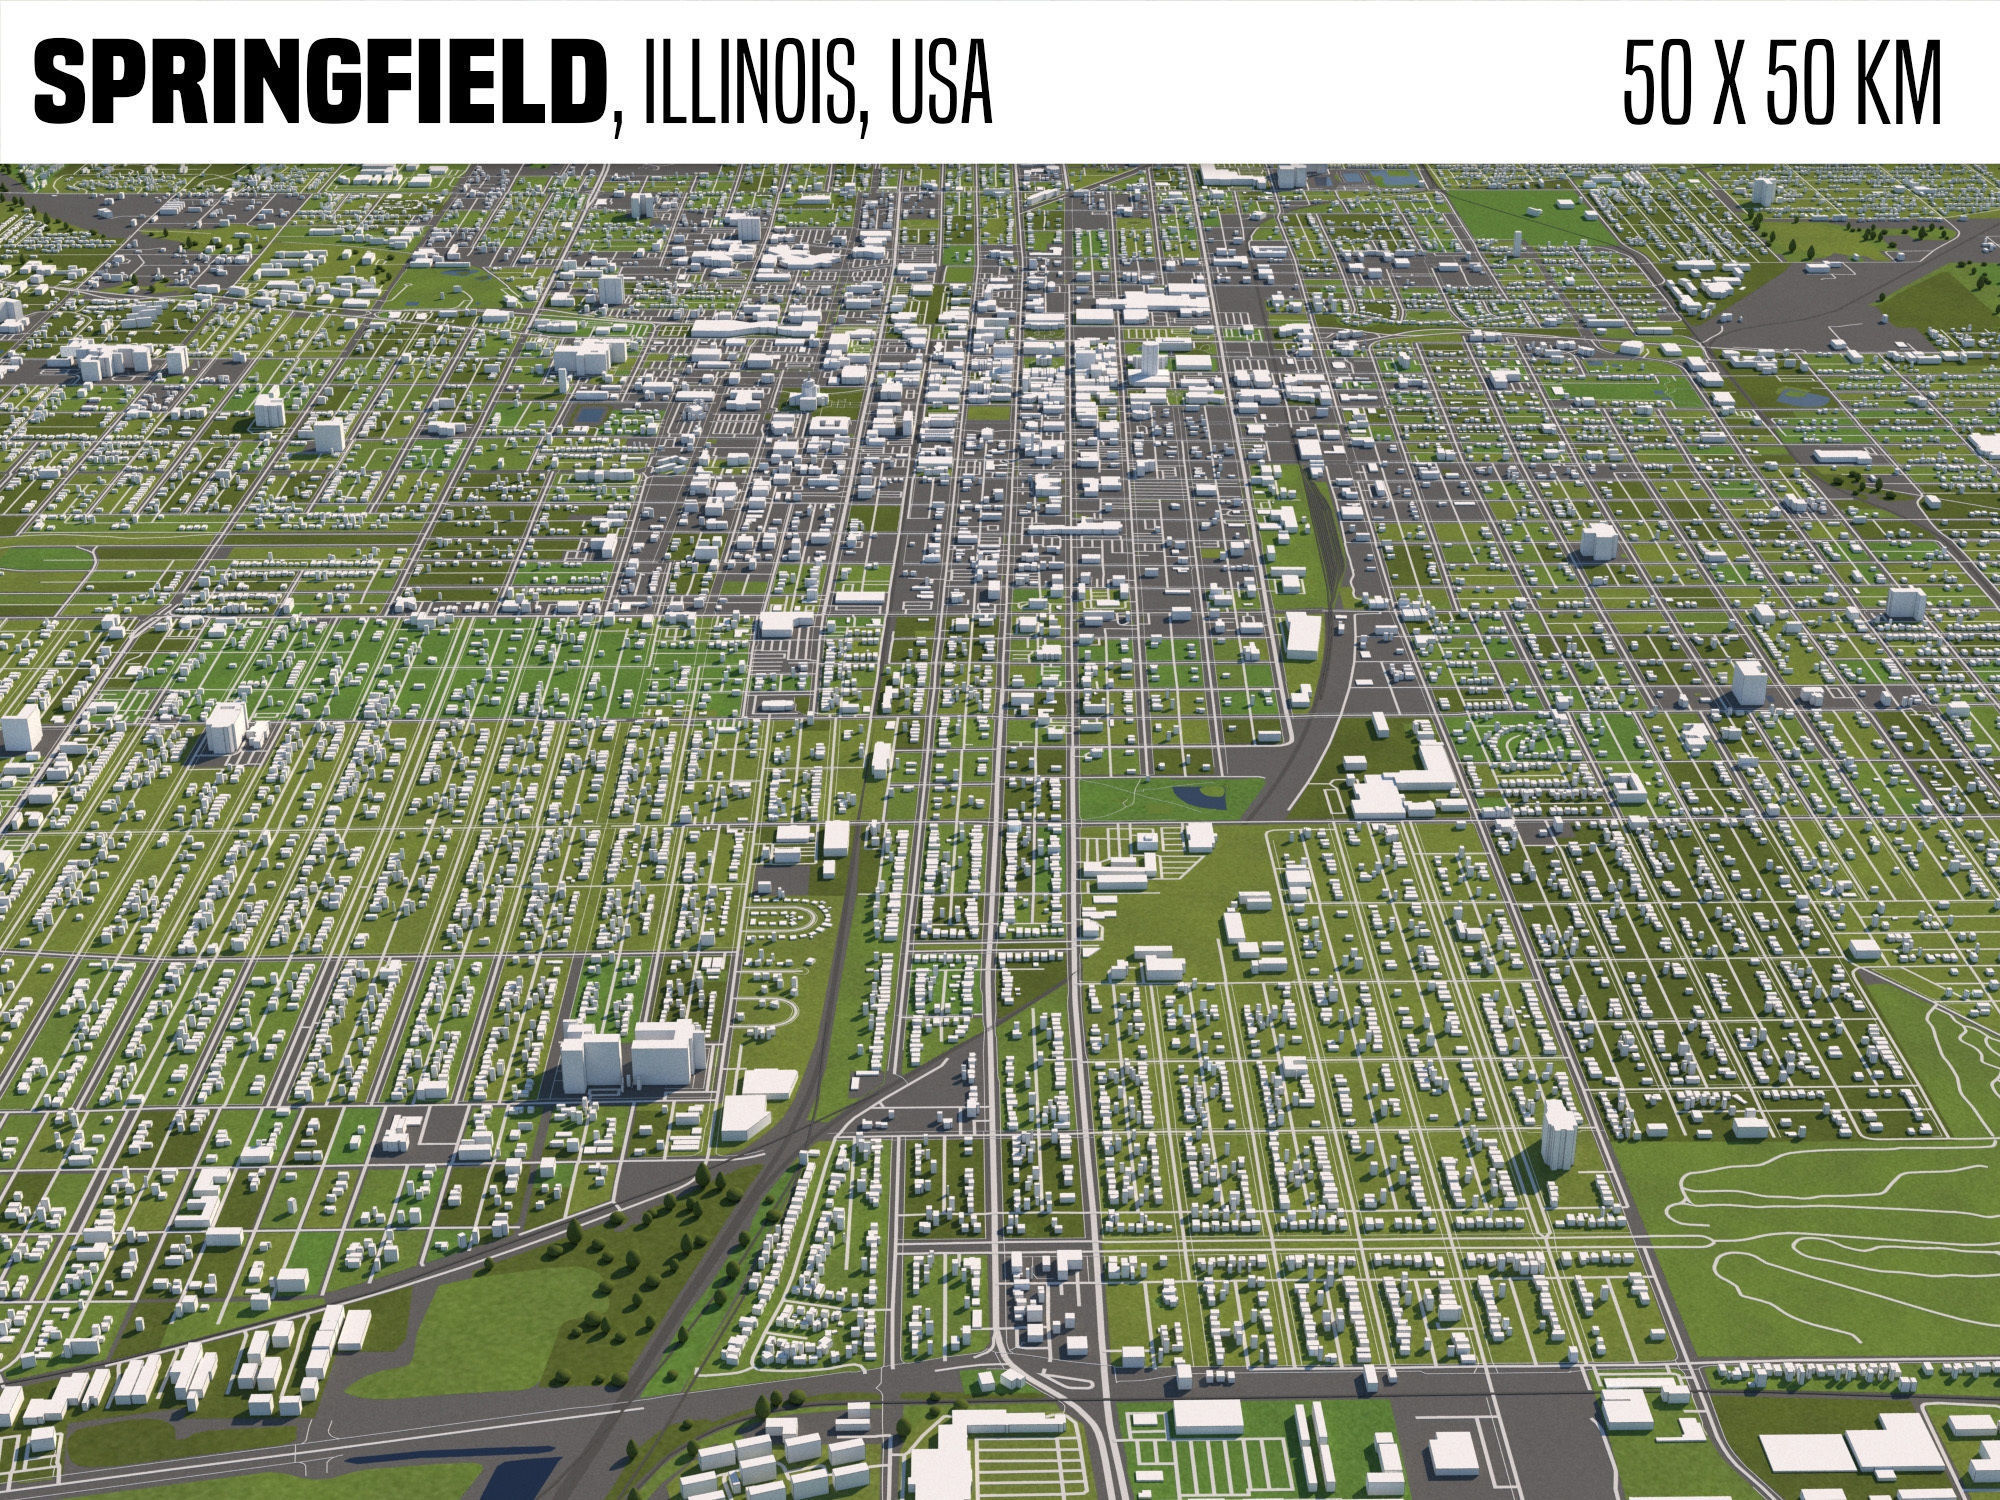 Springfield Illinois USA 50x50km